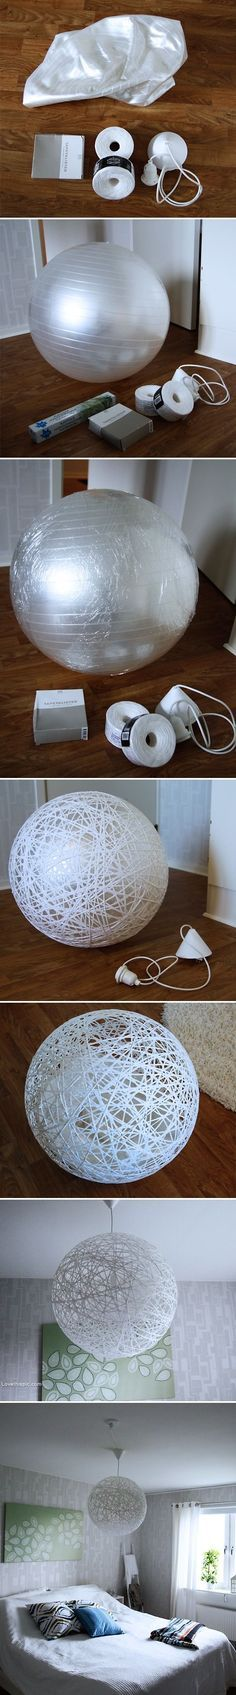 DIY String Lamp. you can also take the different size balls and paint them white, stack them on top of each other and make a snowman